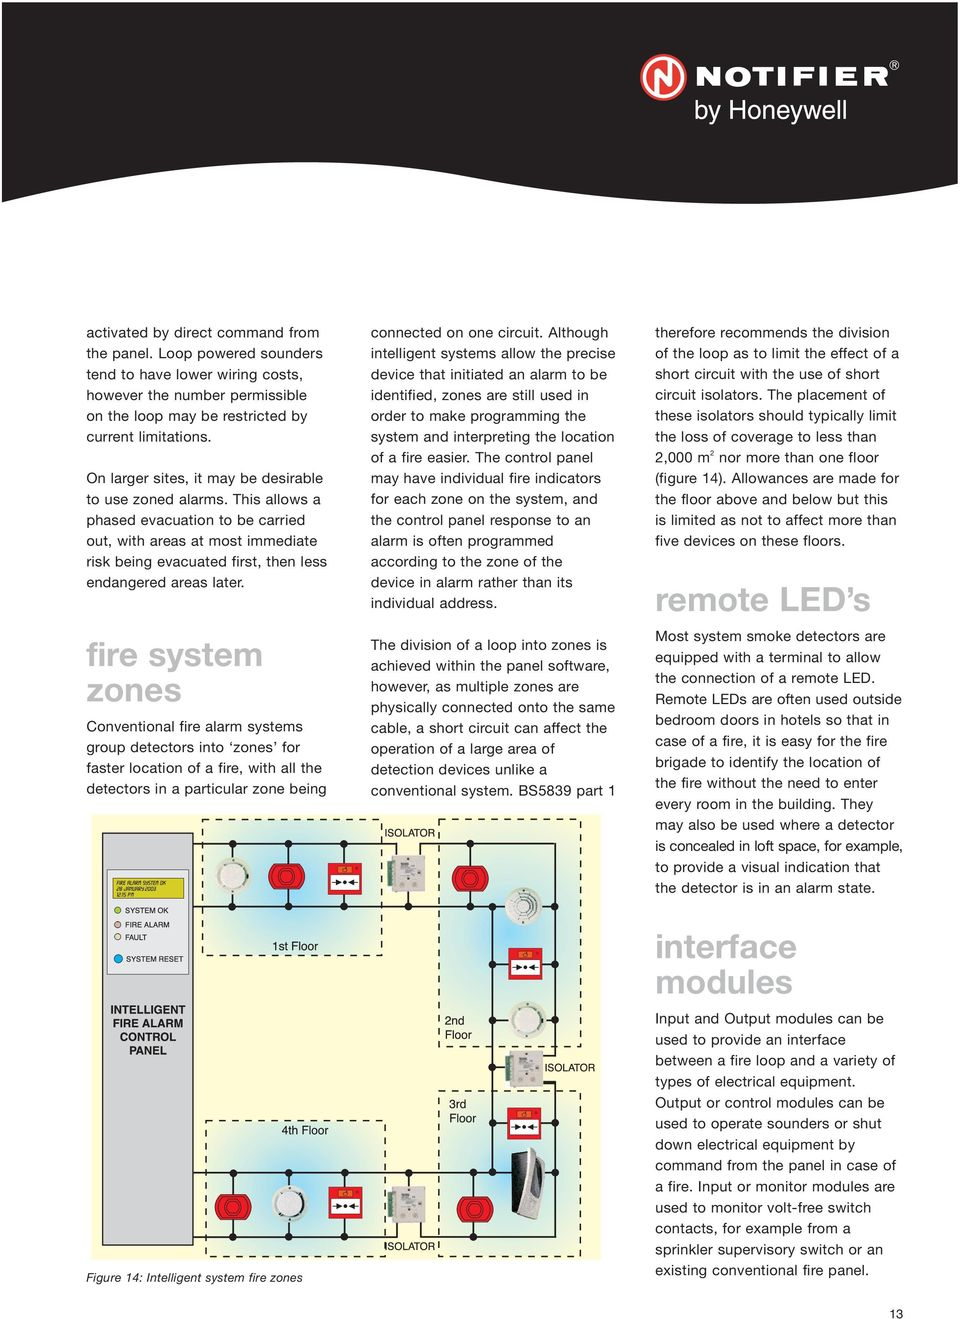 Fire Detection Systems Pdf Intelligent Alarm System Schematic Diagram Zones Conventional Group Detectors Into For Faster Location Of A